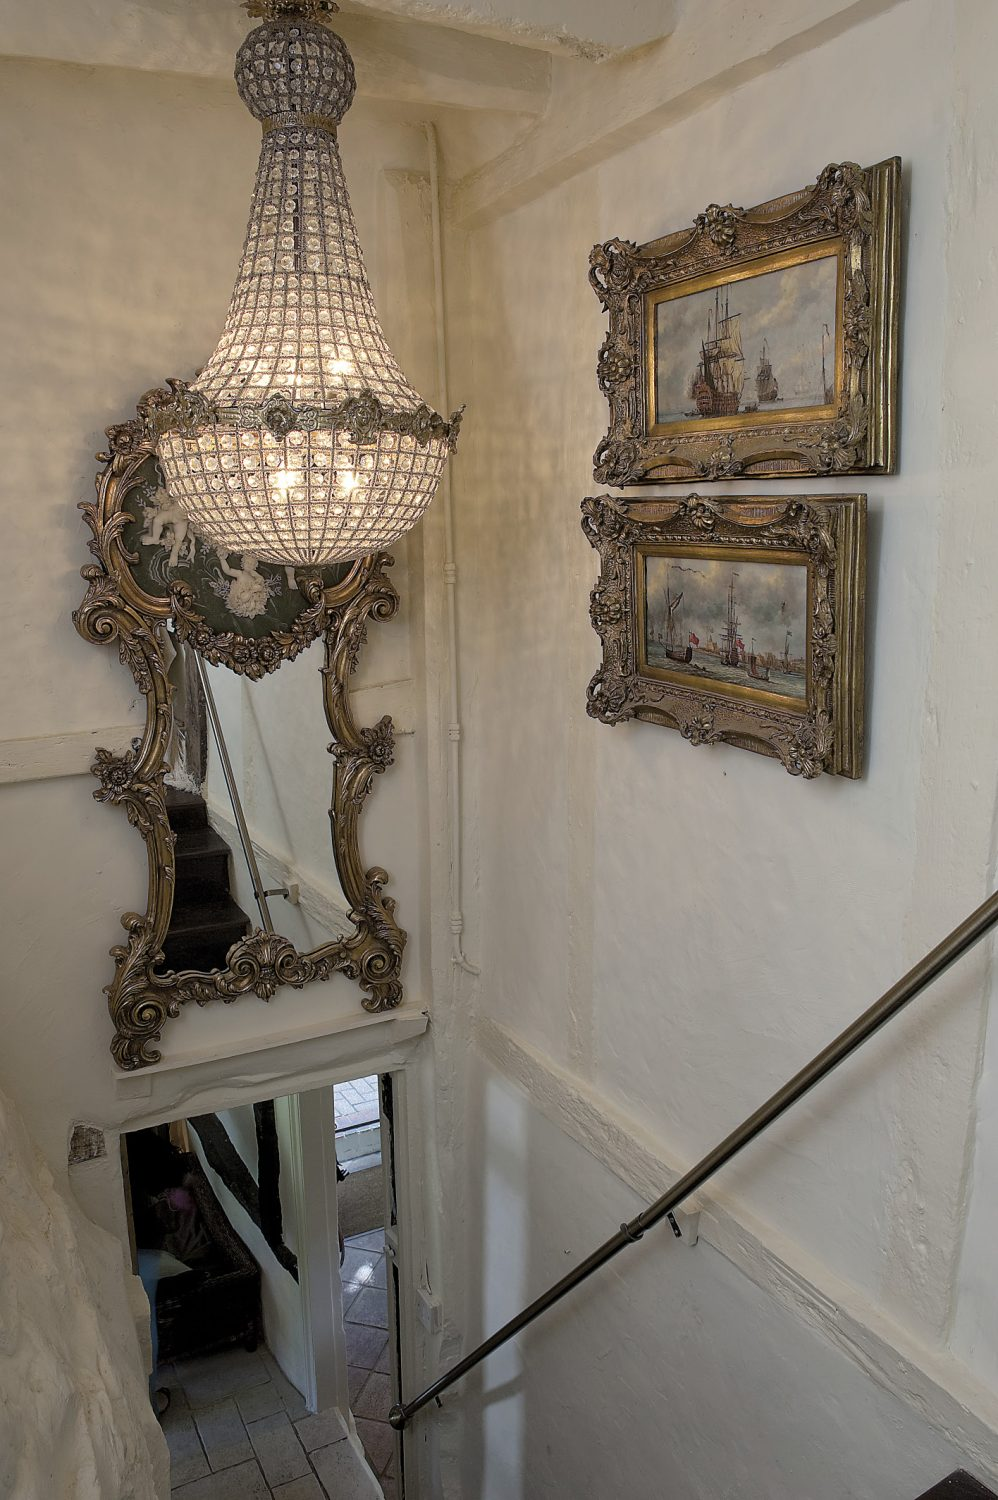 Opening a door to the side of the chimney-breast, Andrew reveals the stairs to the first floor. Above our heads an extravagantly gilded mirror and French Empire-style chandelier set the tone